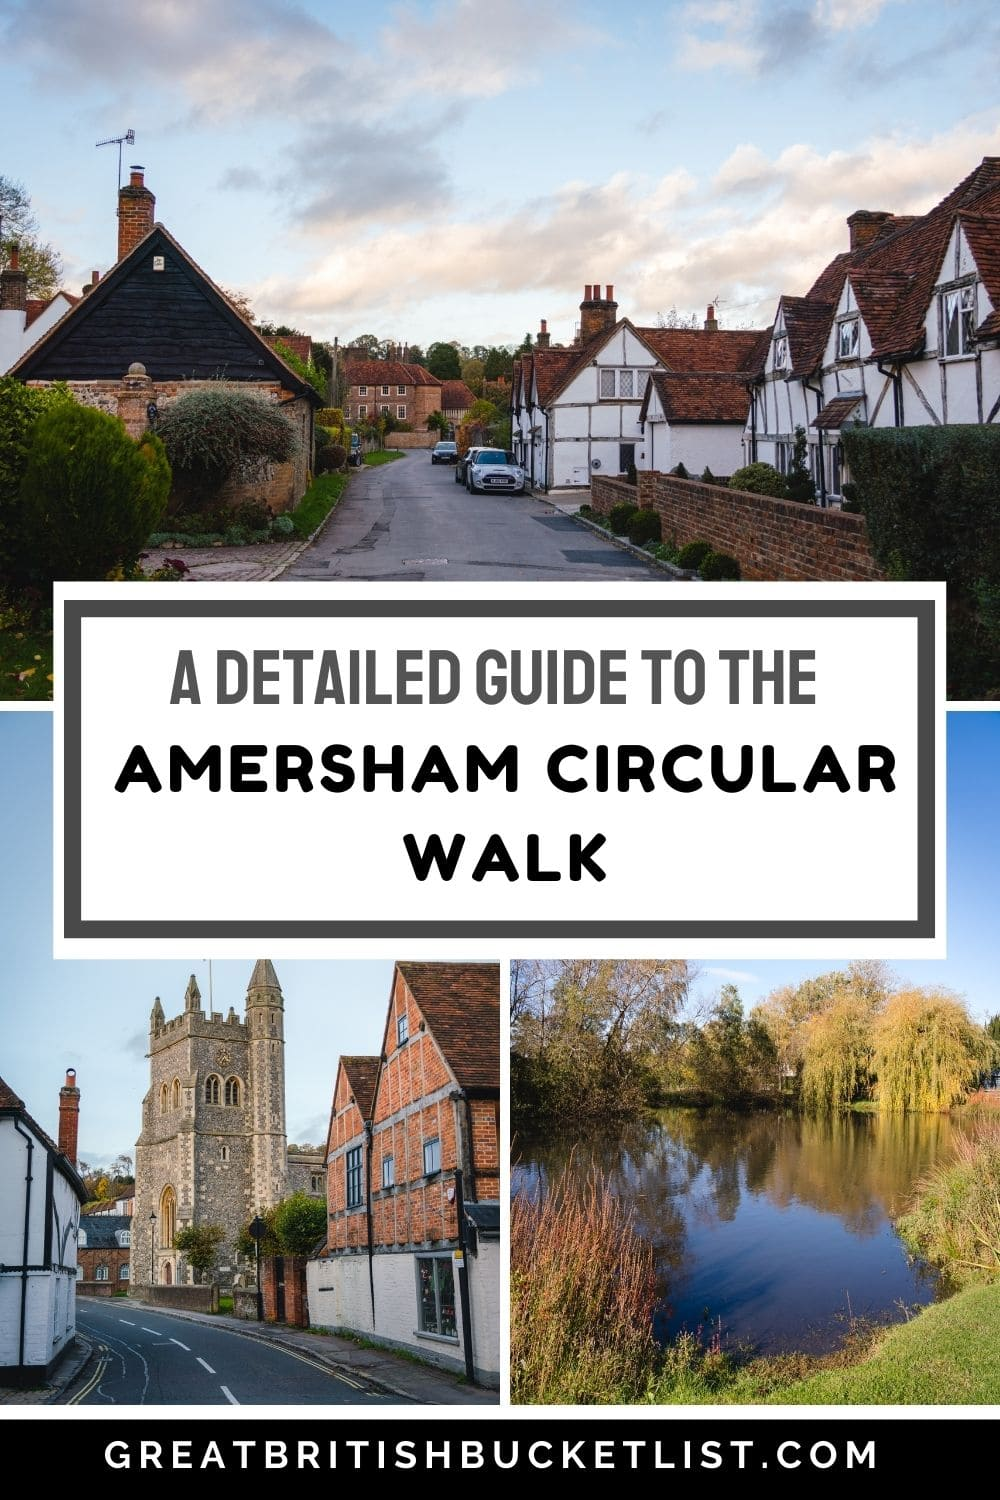 The Ultimate Guide to the Amersham Circular Walk